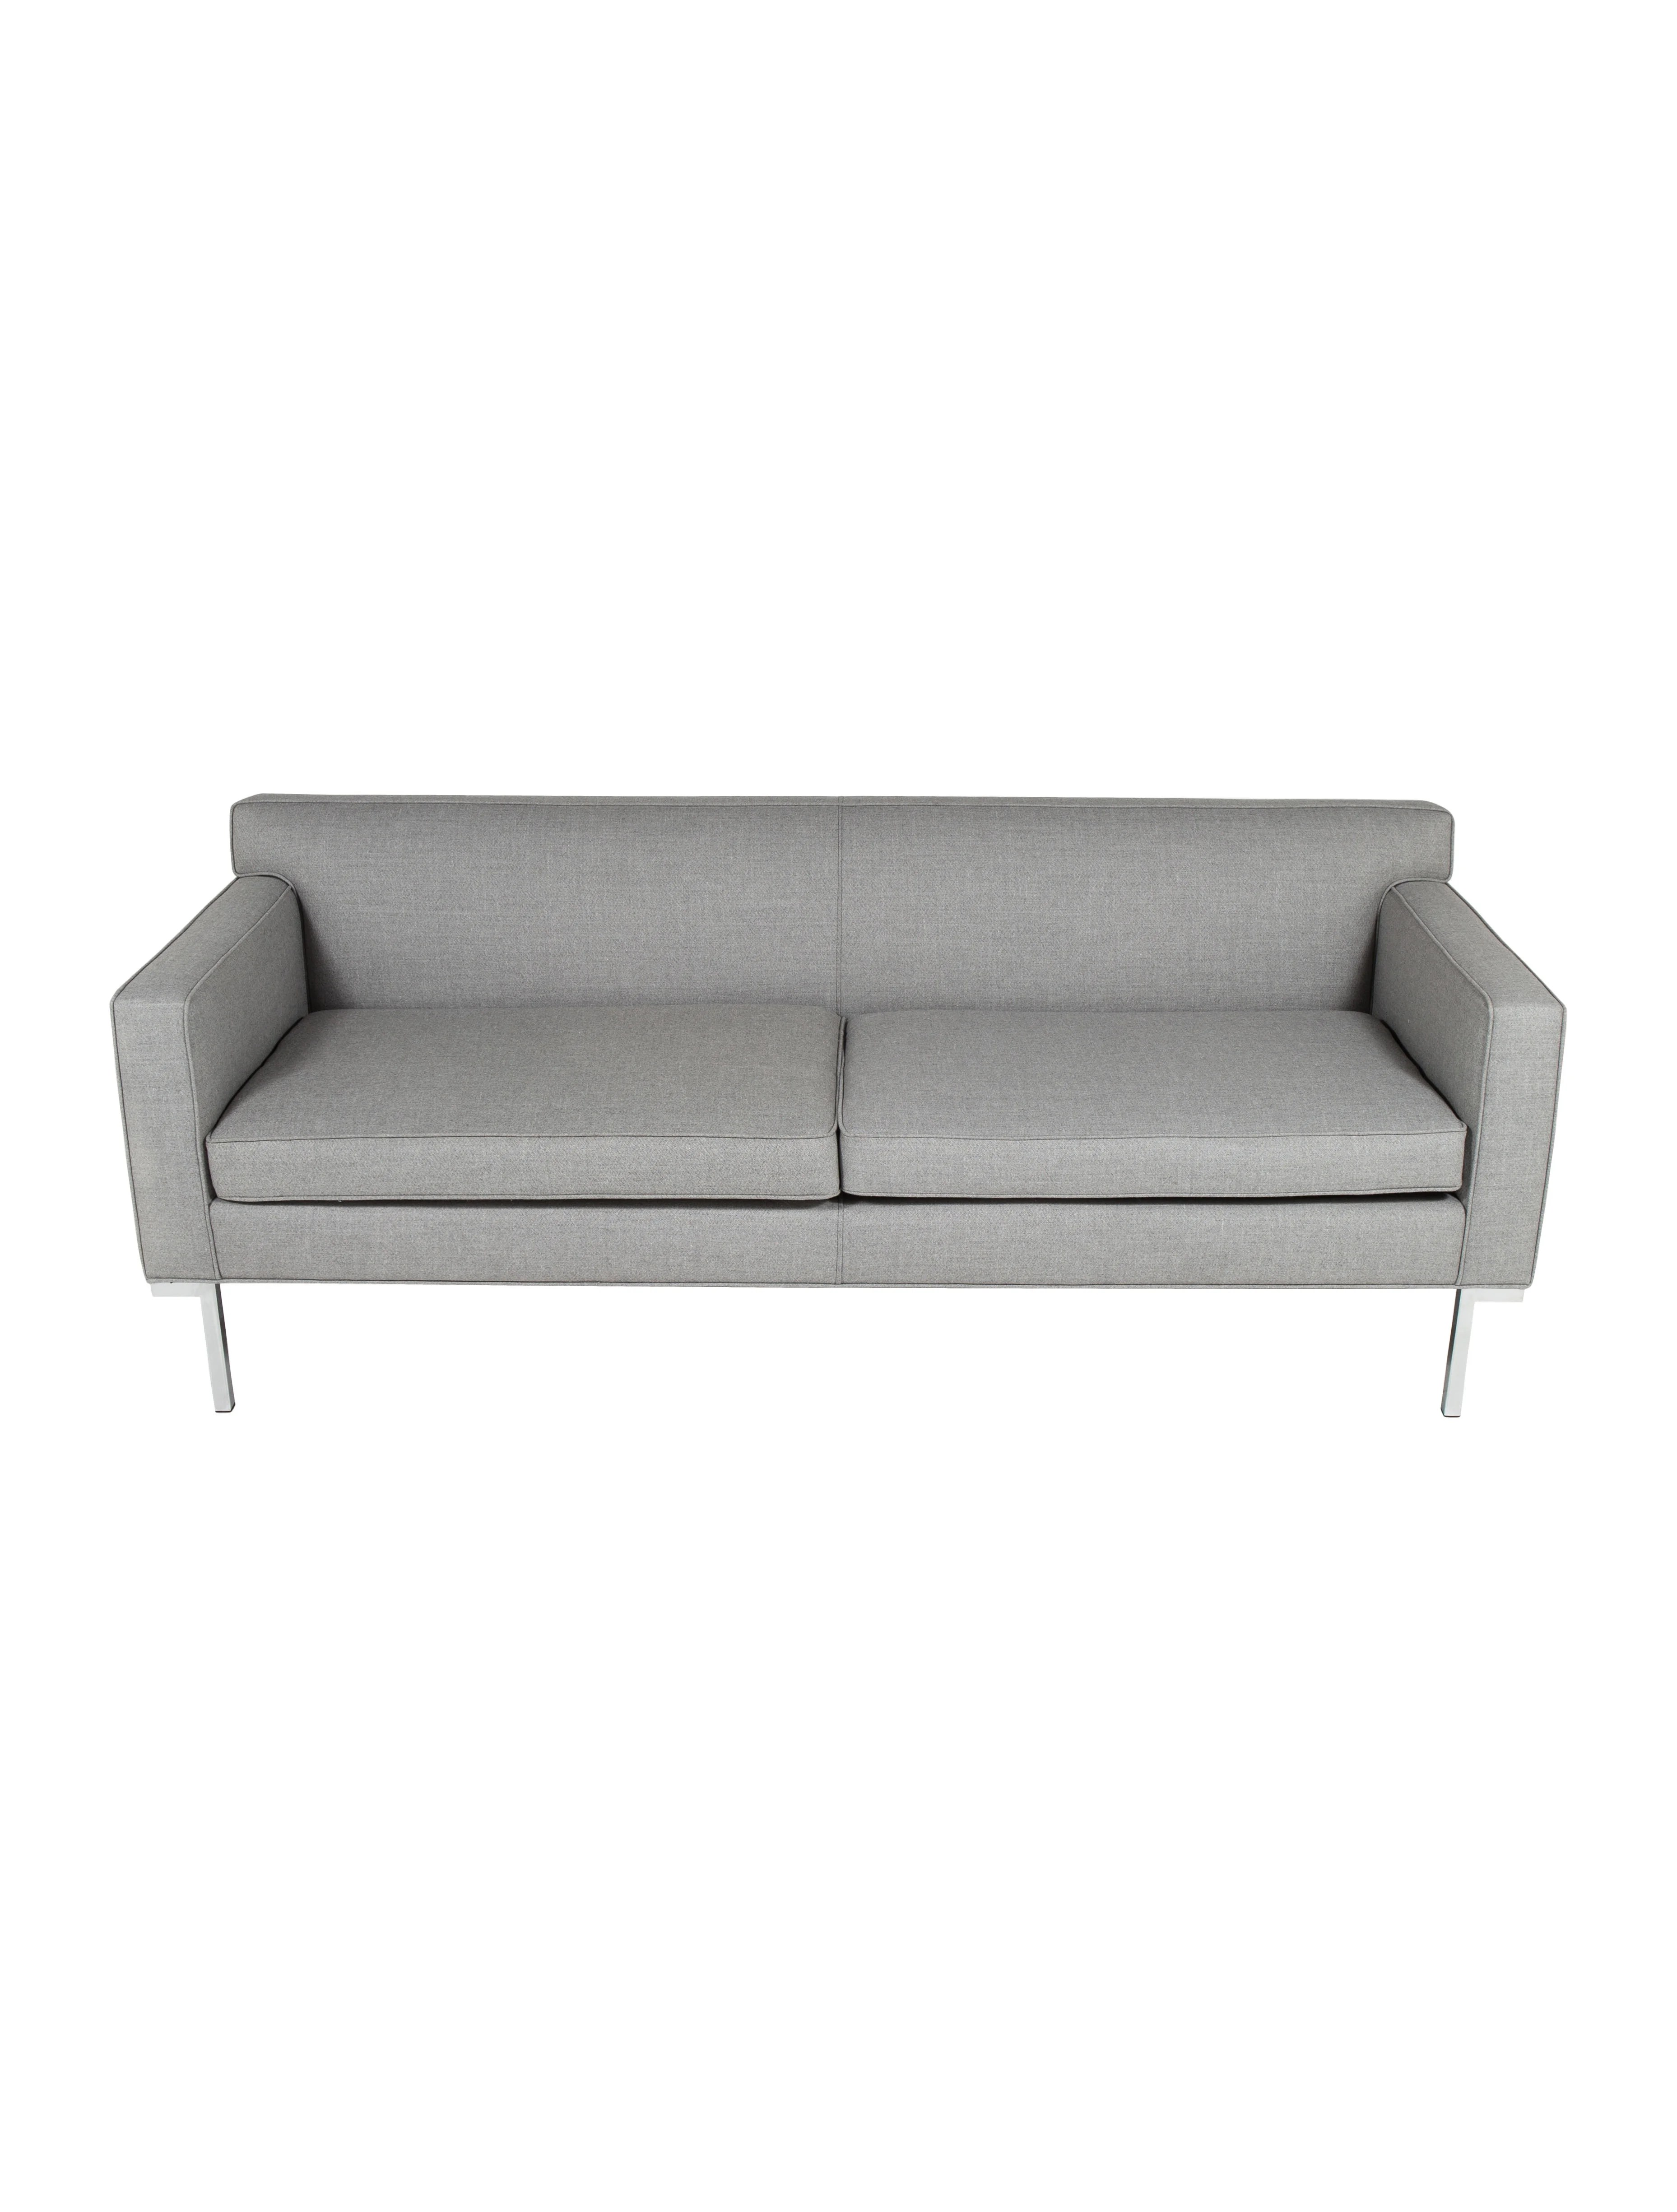 dwr theatre sofa review how to clean suede cushions design within reach furniture deswr20026